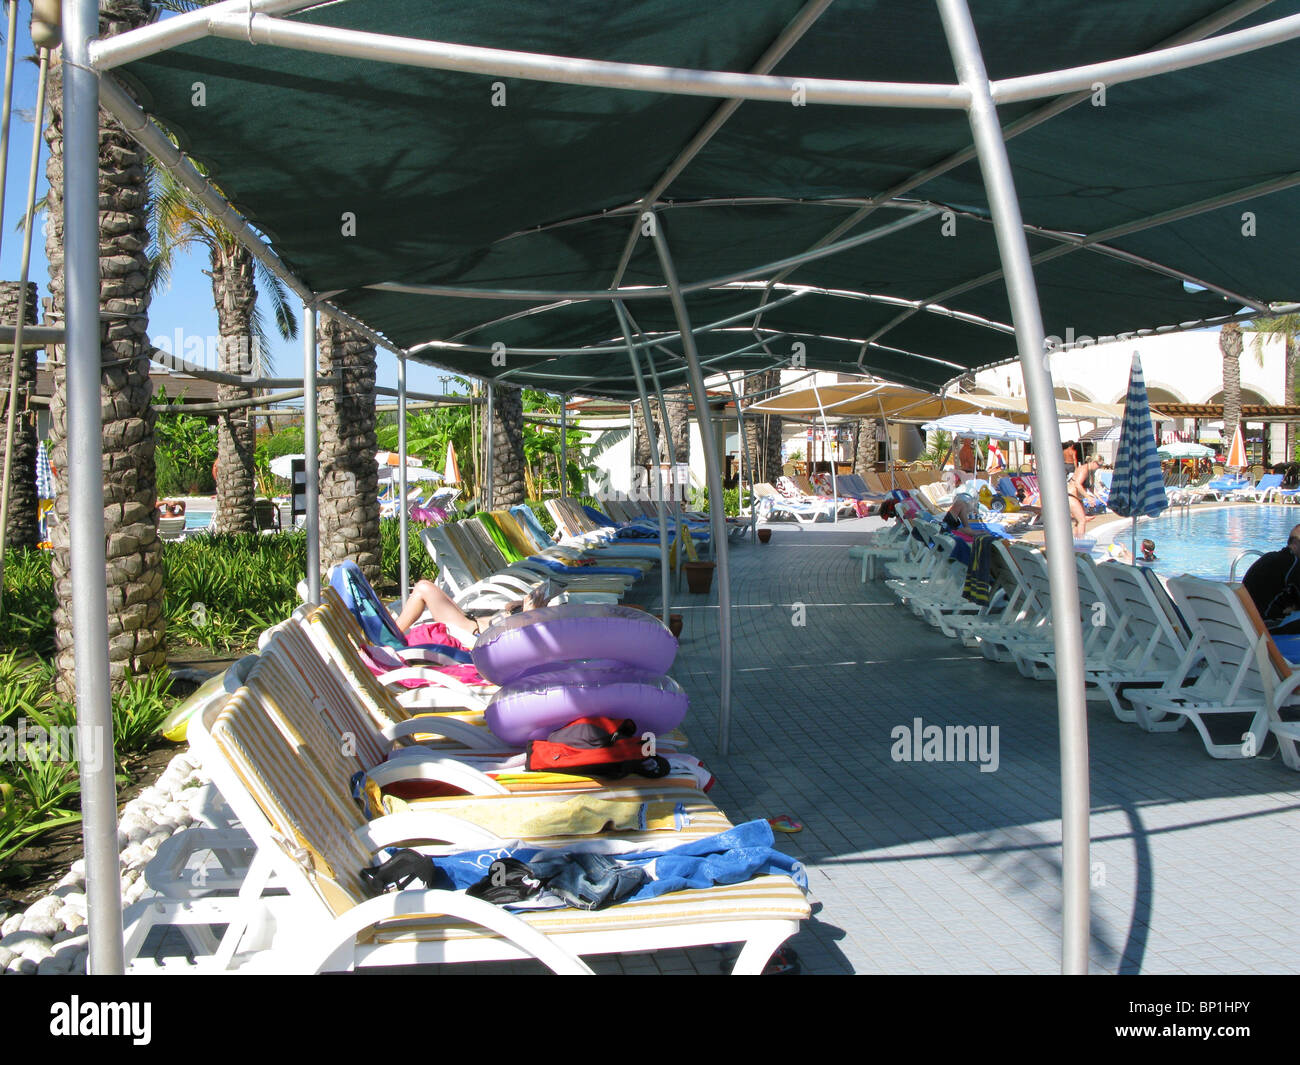 Sun loungers in the shade, with towels on reserving them - Stock Image